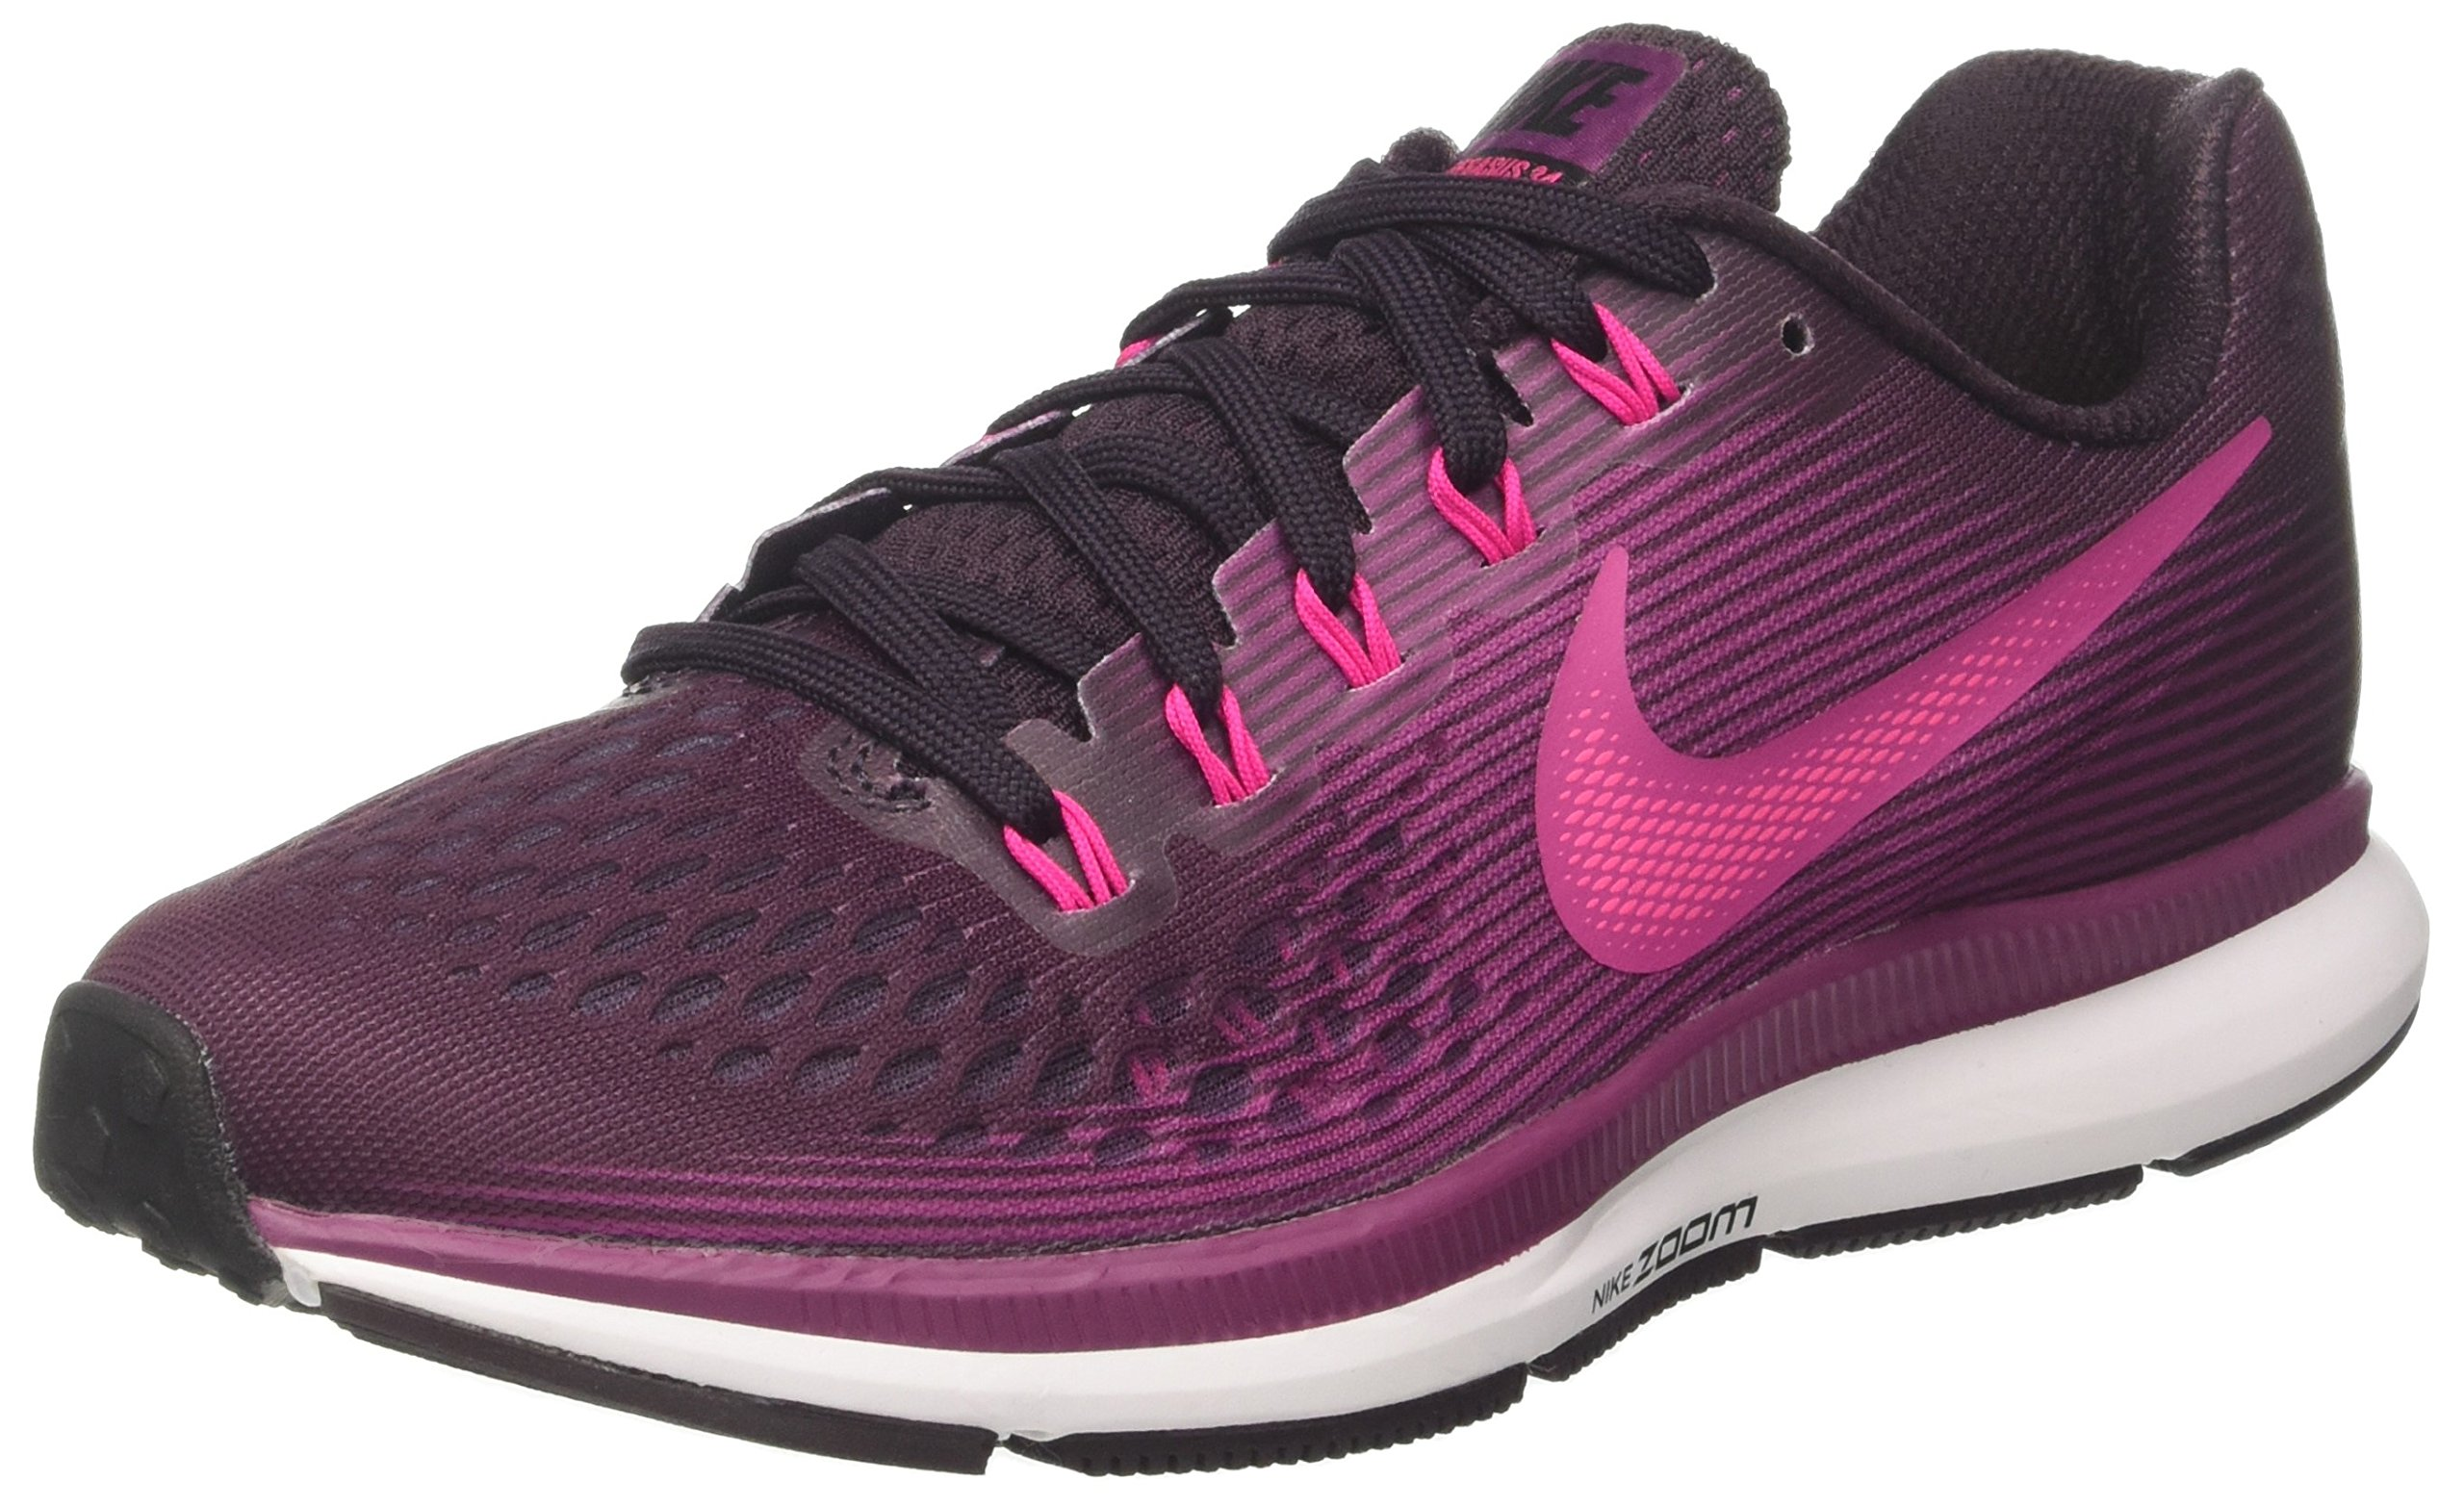 Nike Womens Air Zoom Pegasus Fabric Low Top Lace Up Running, Pink, Size 8.0